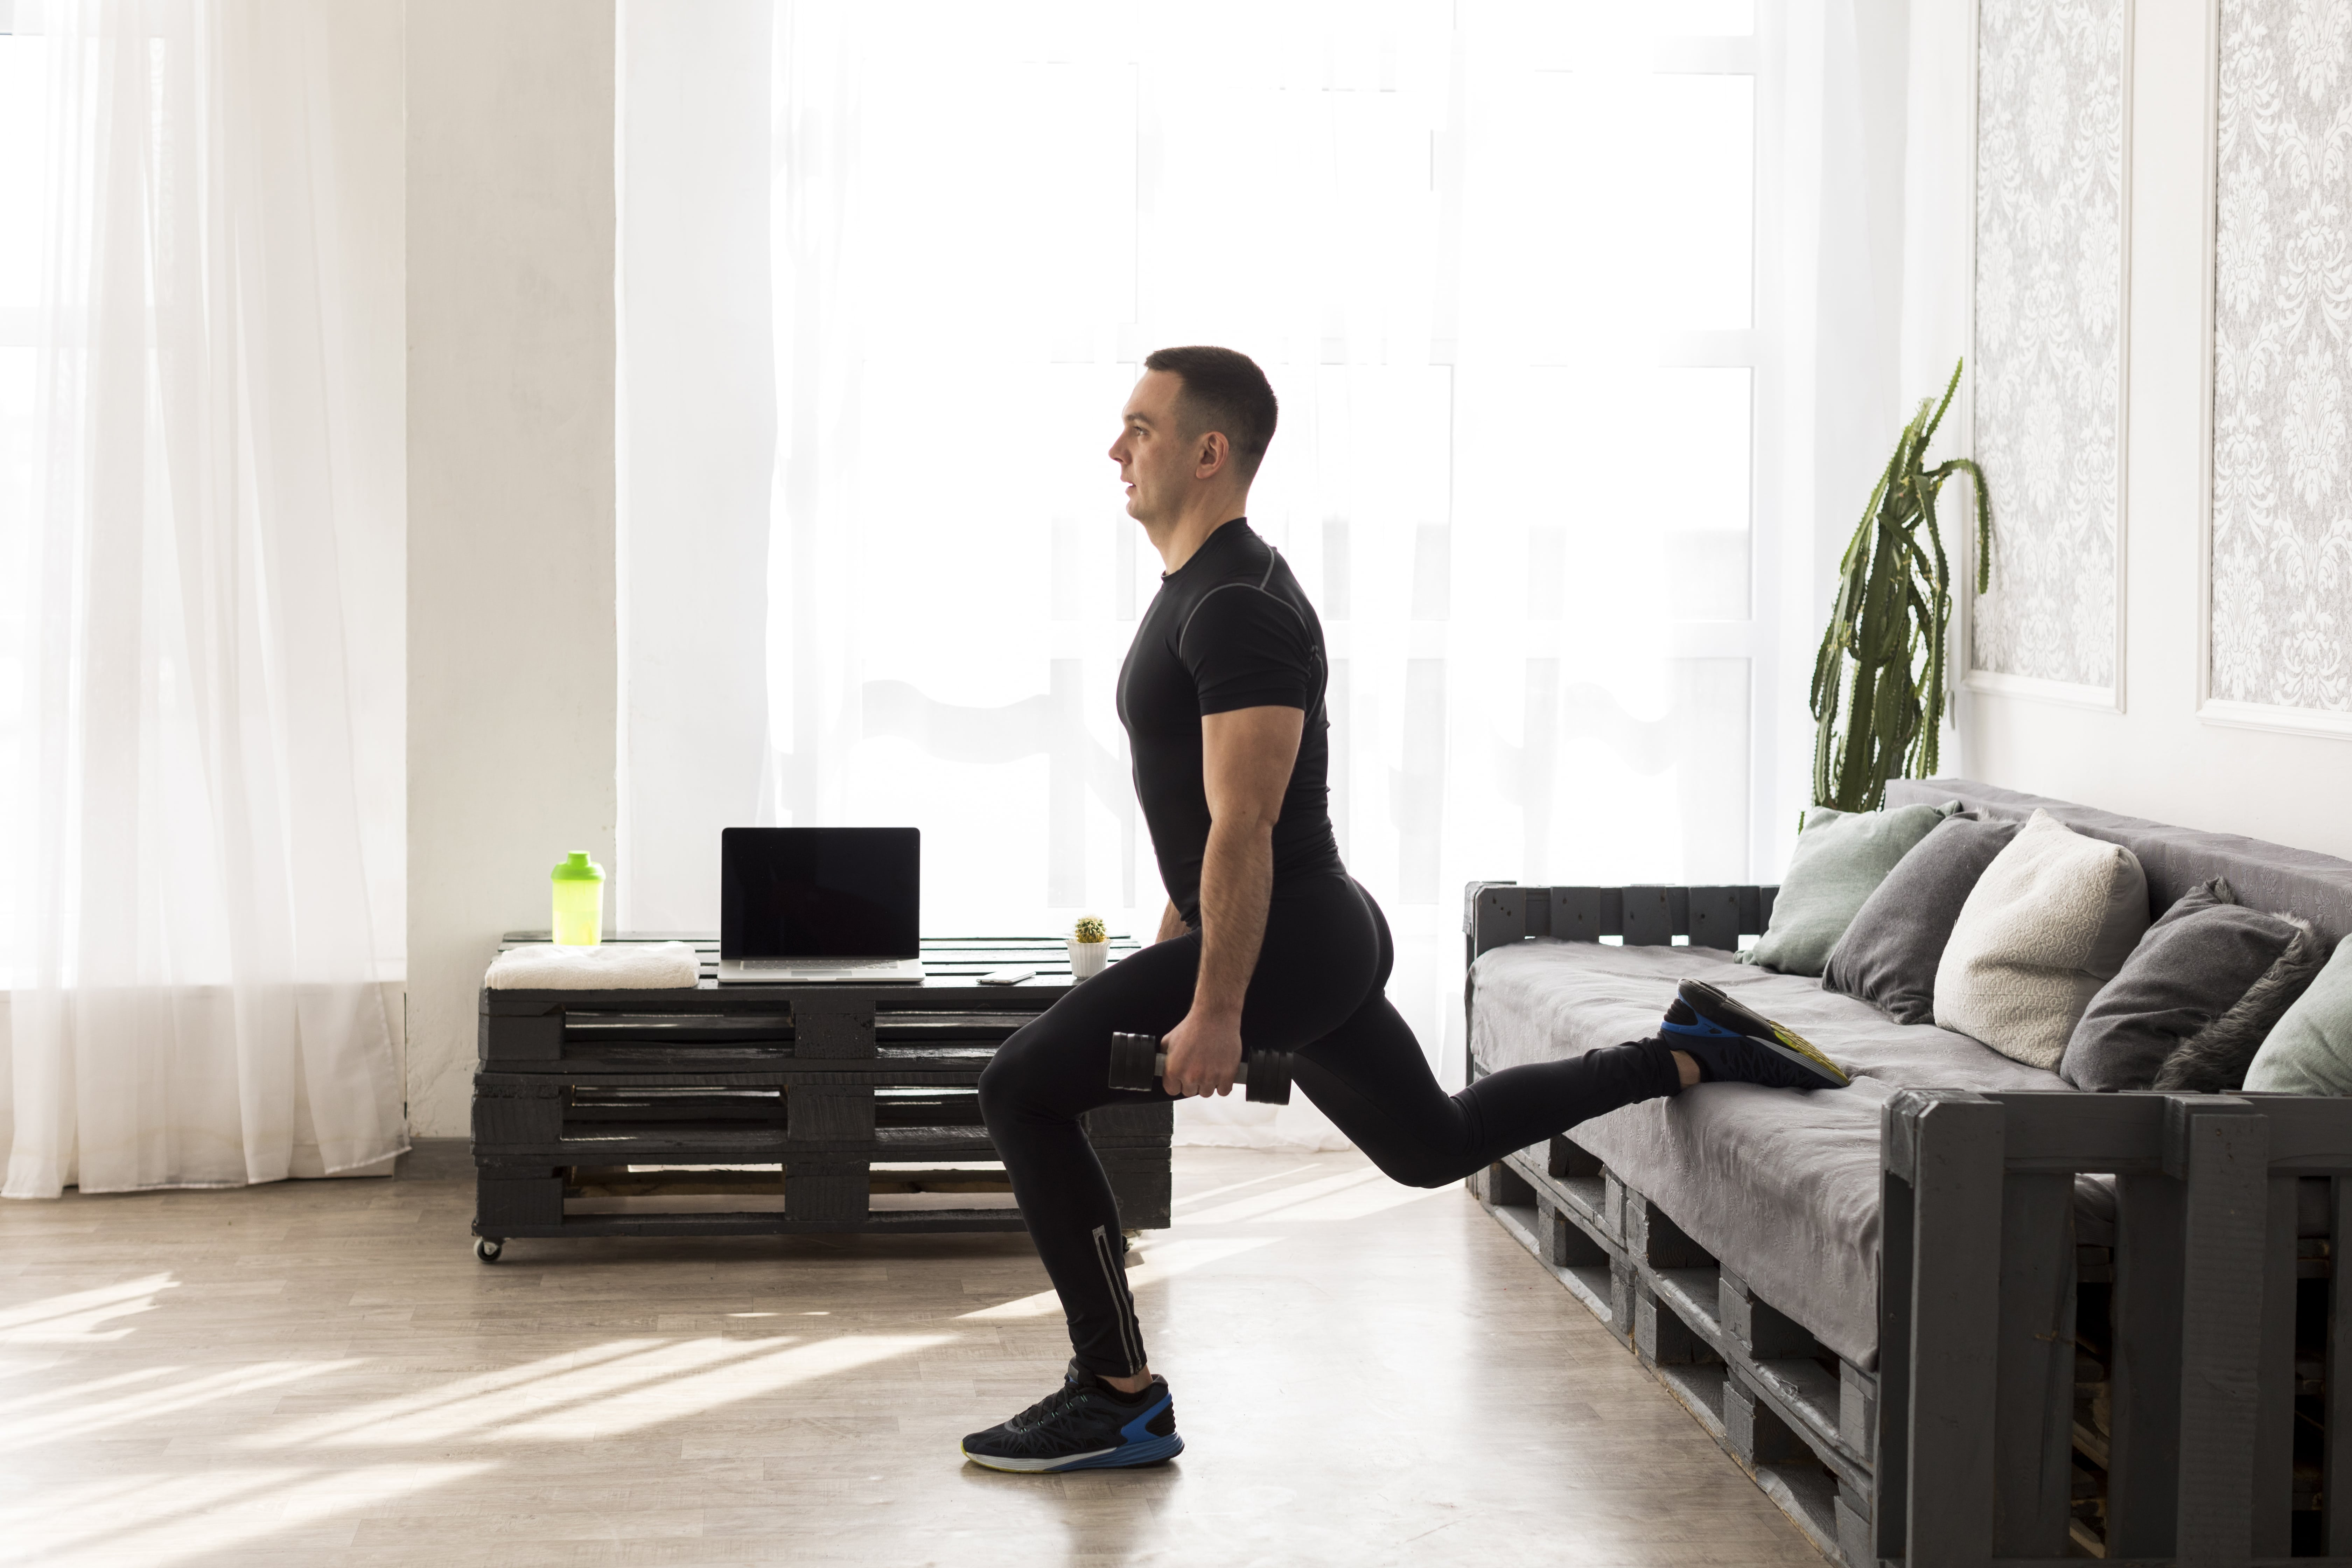 Beginners' free workout plans at home